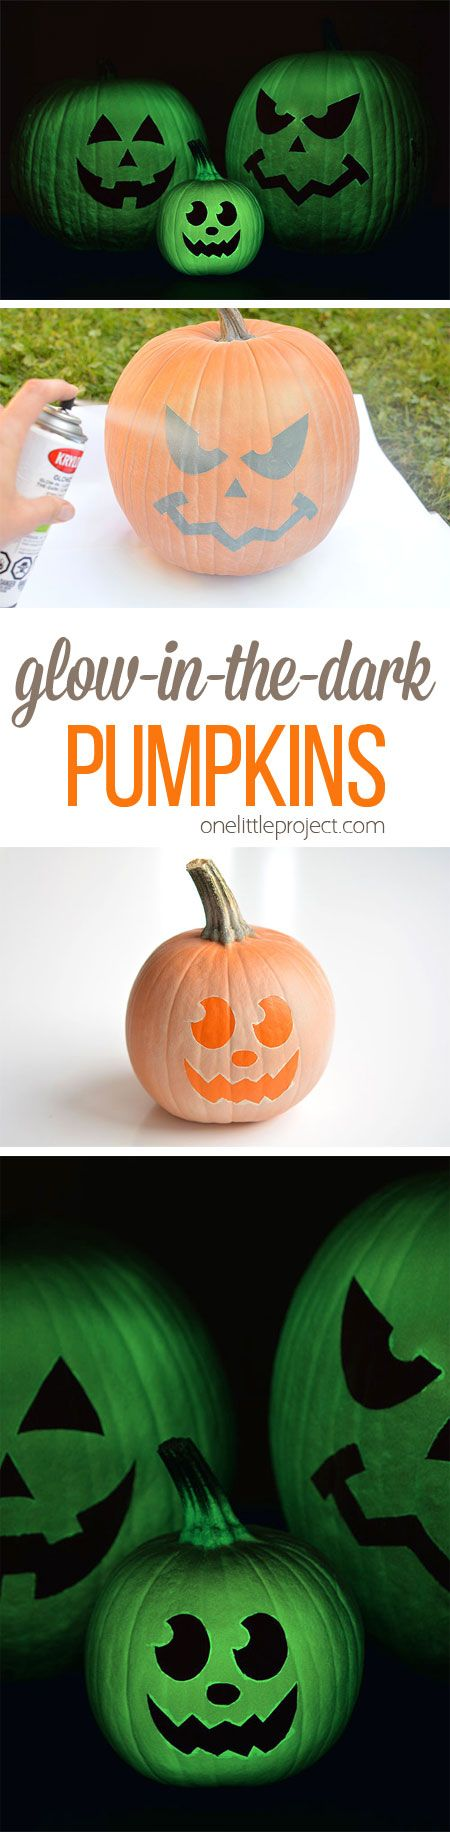 Glow in the dark pumpkins pumpkin ideas dark and easy